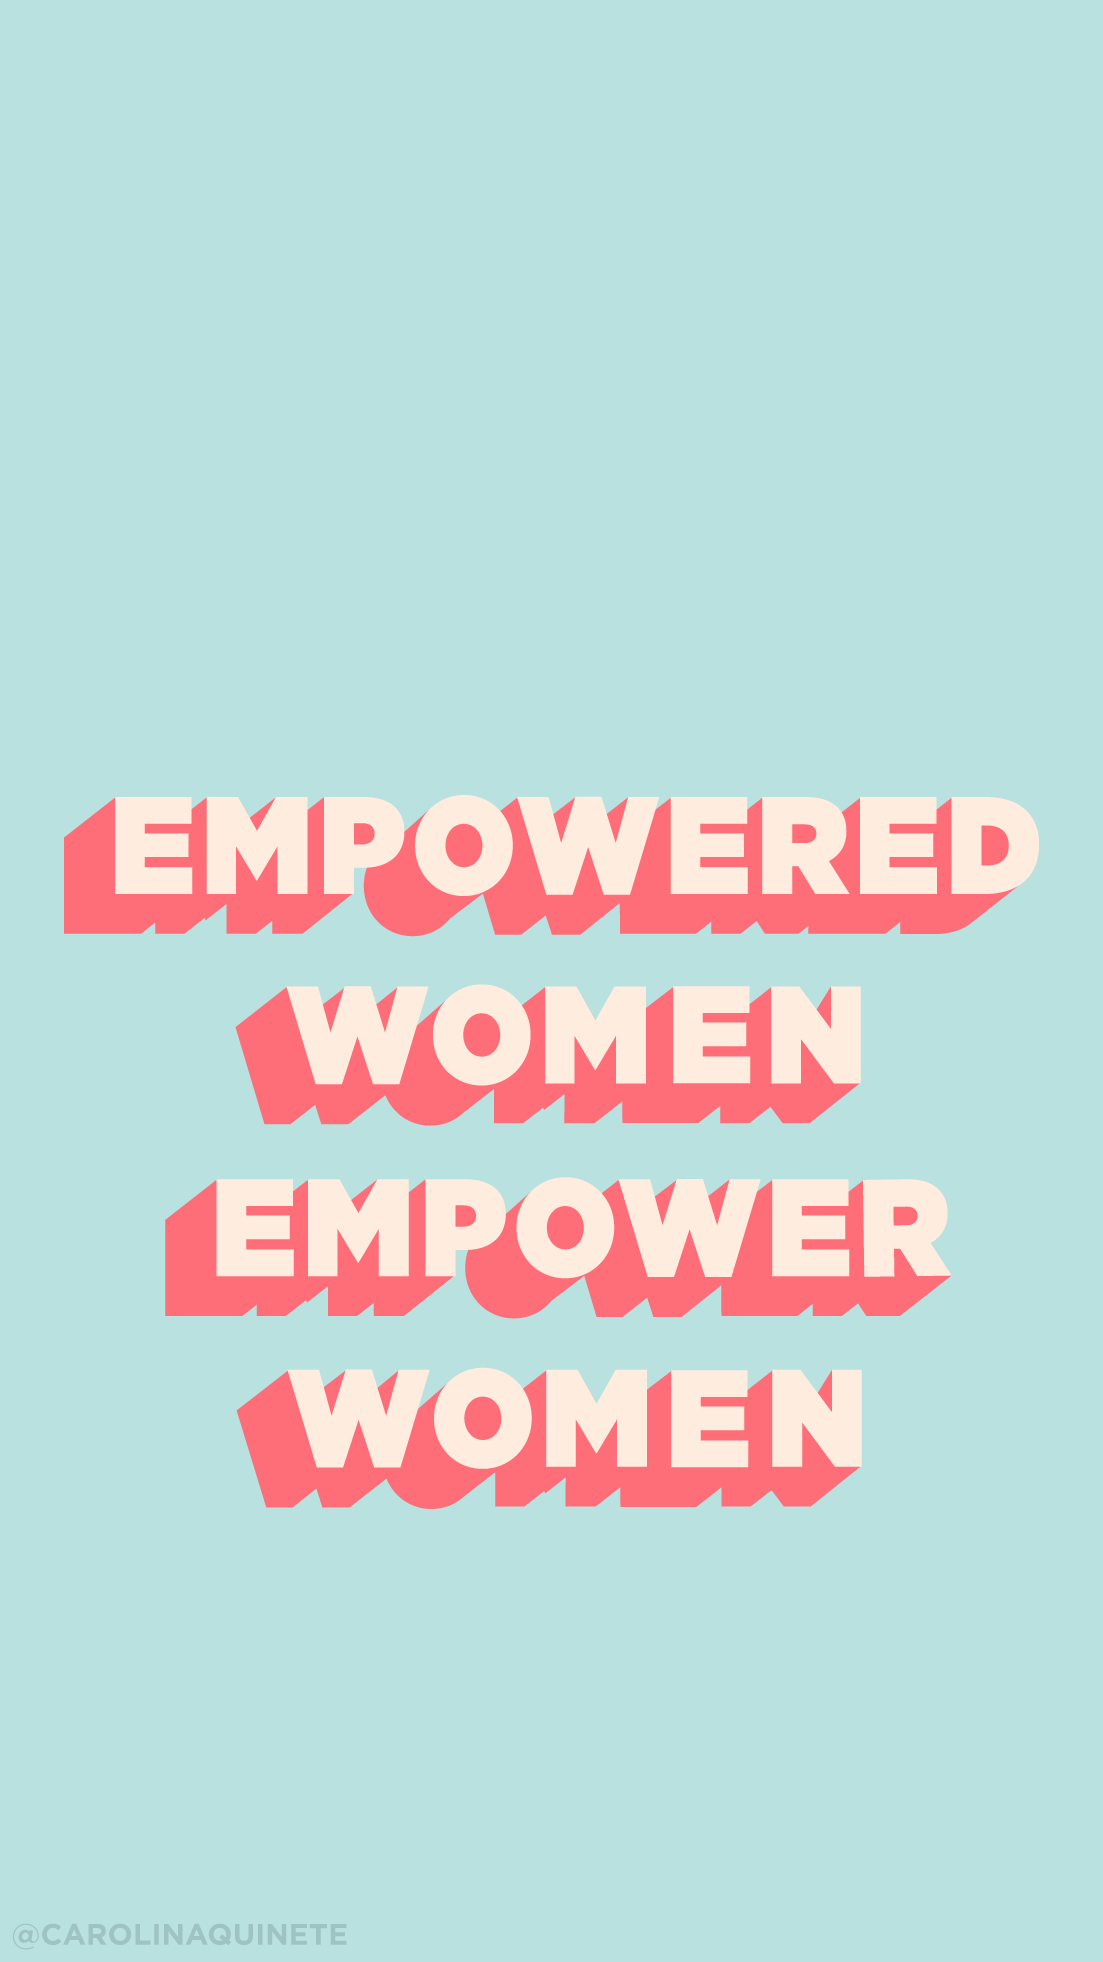 Wallpaper Mobile Empowered Woman International Woman S Day